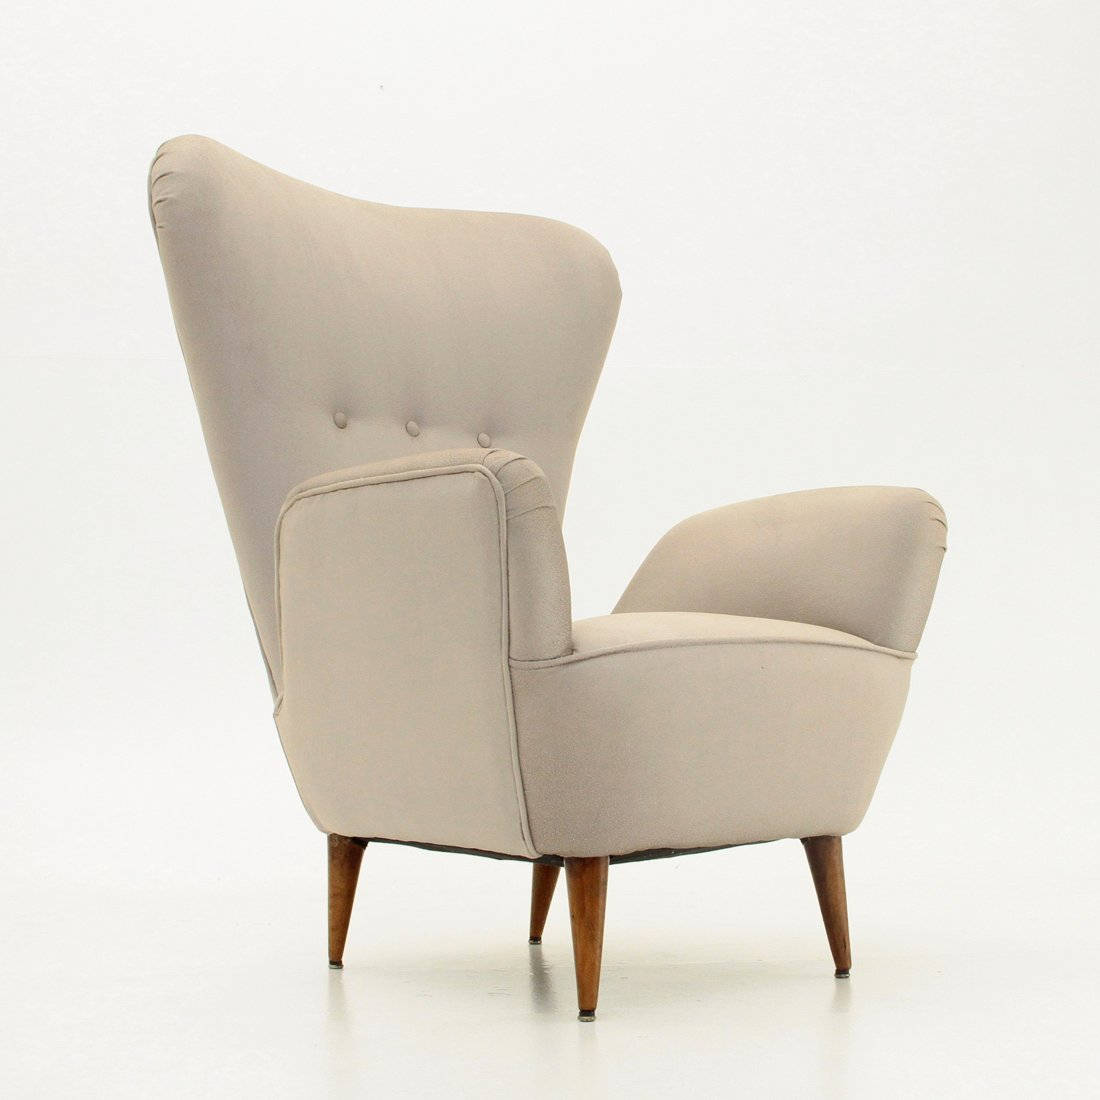 Italian Highback Armchair With Conical Shape Legs, 1950s